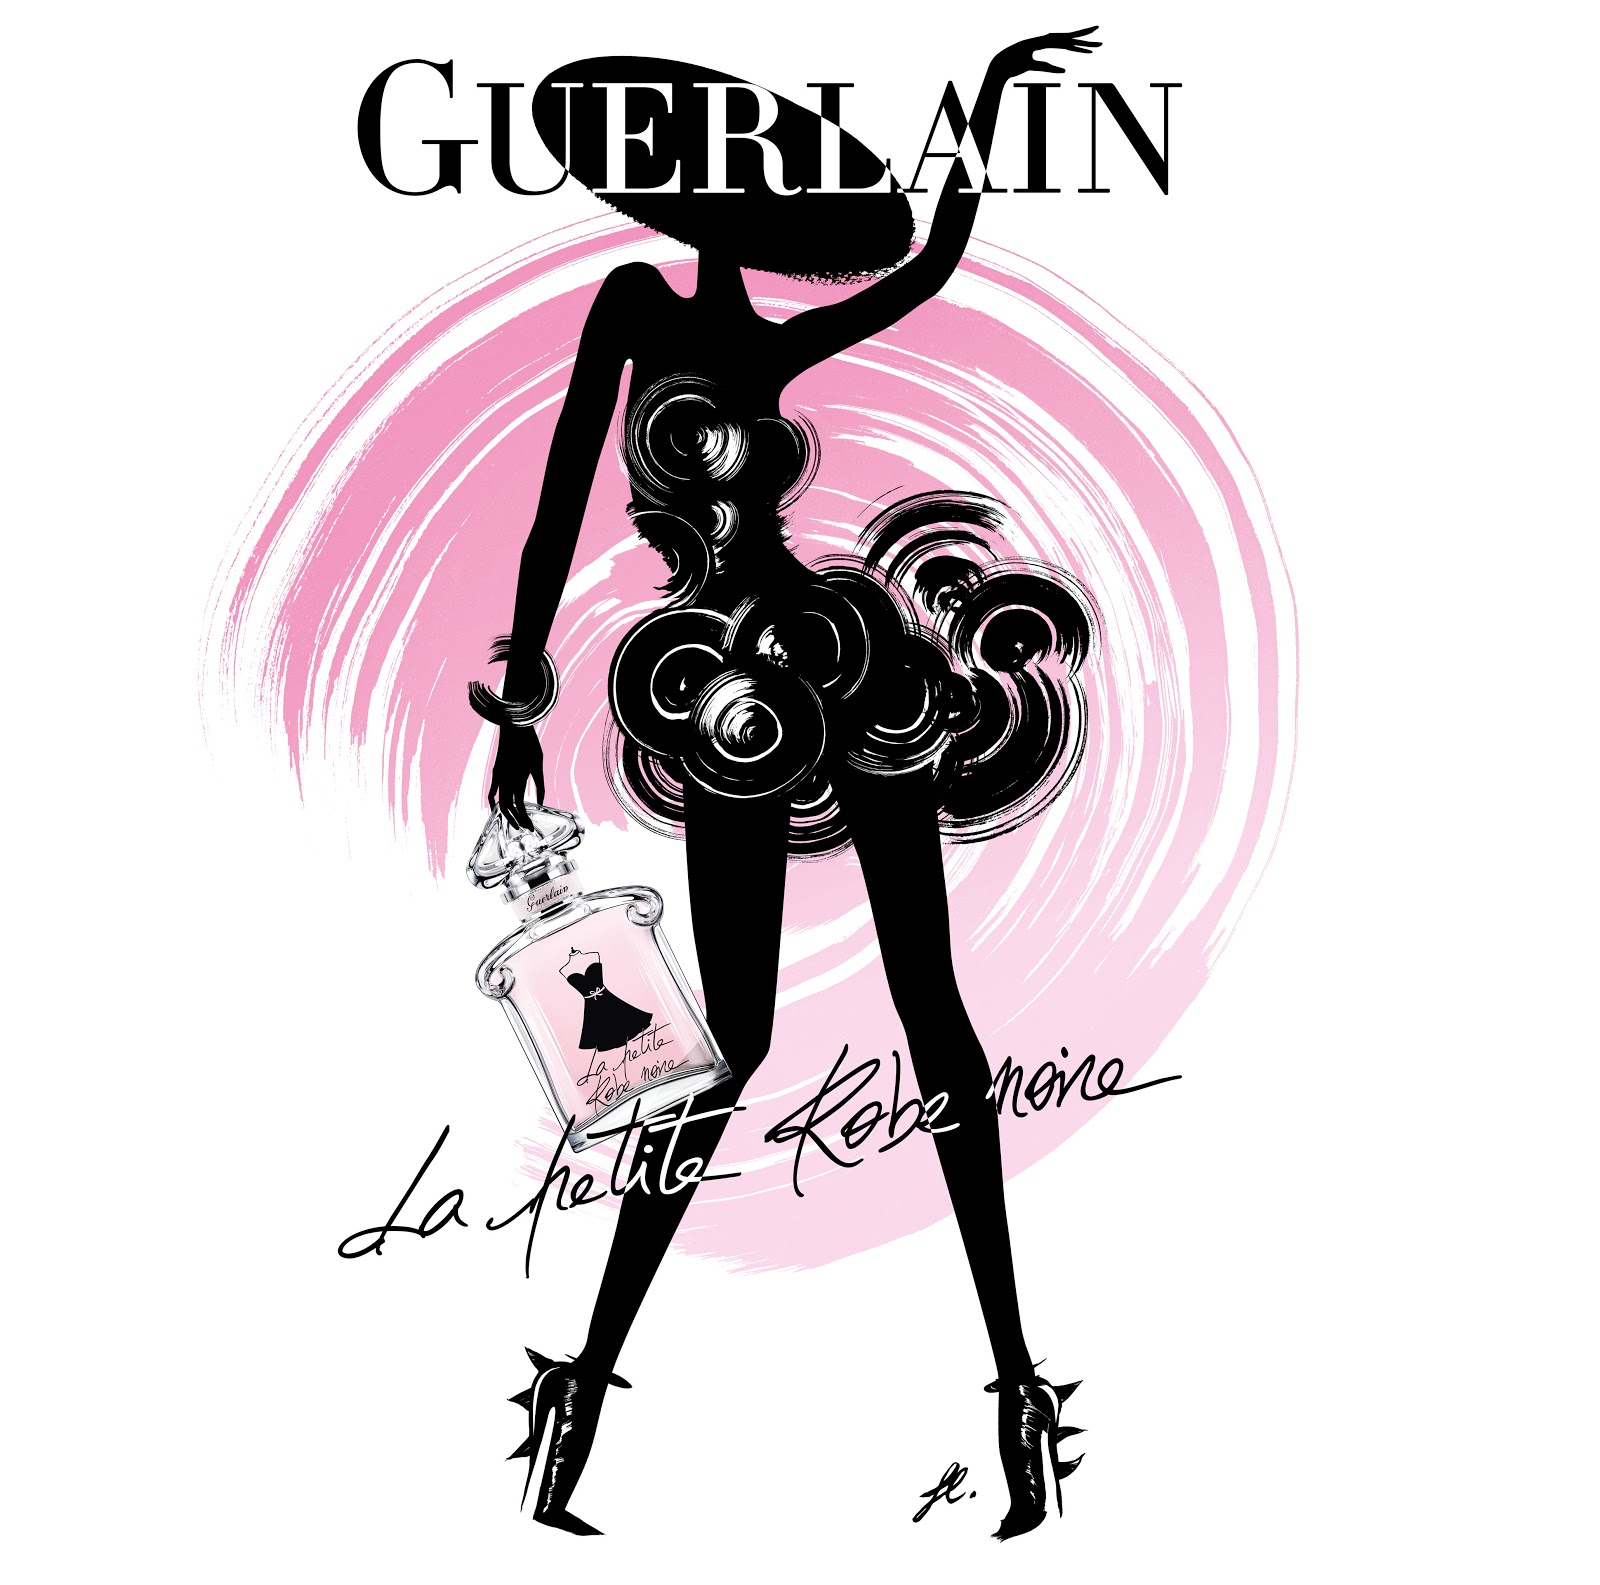 illustration brand building guerlain la petite robe noire illustrators olivier kuntzel. Black Bedroom Furniture Sets. Home Design Ideas